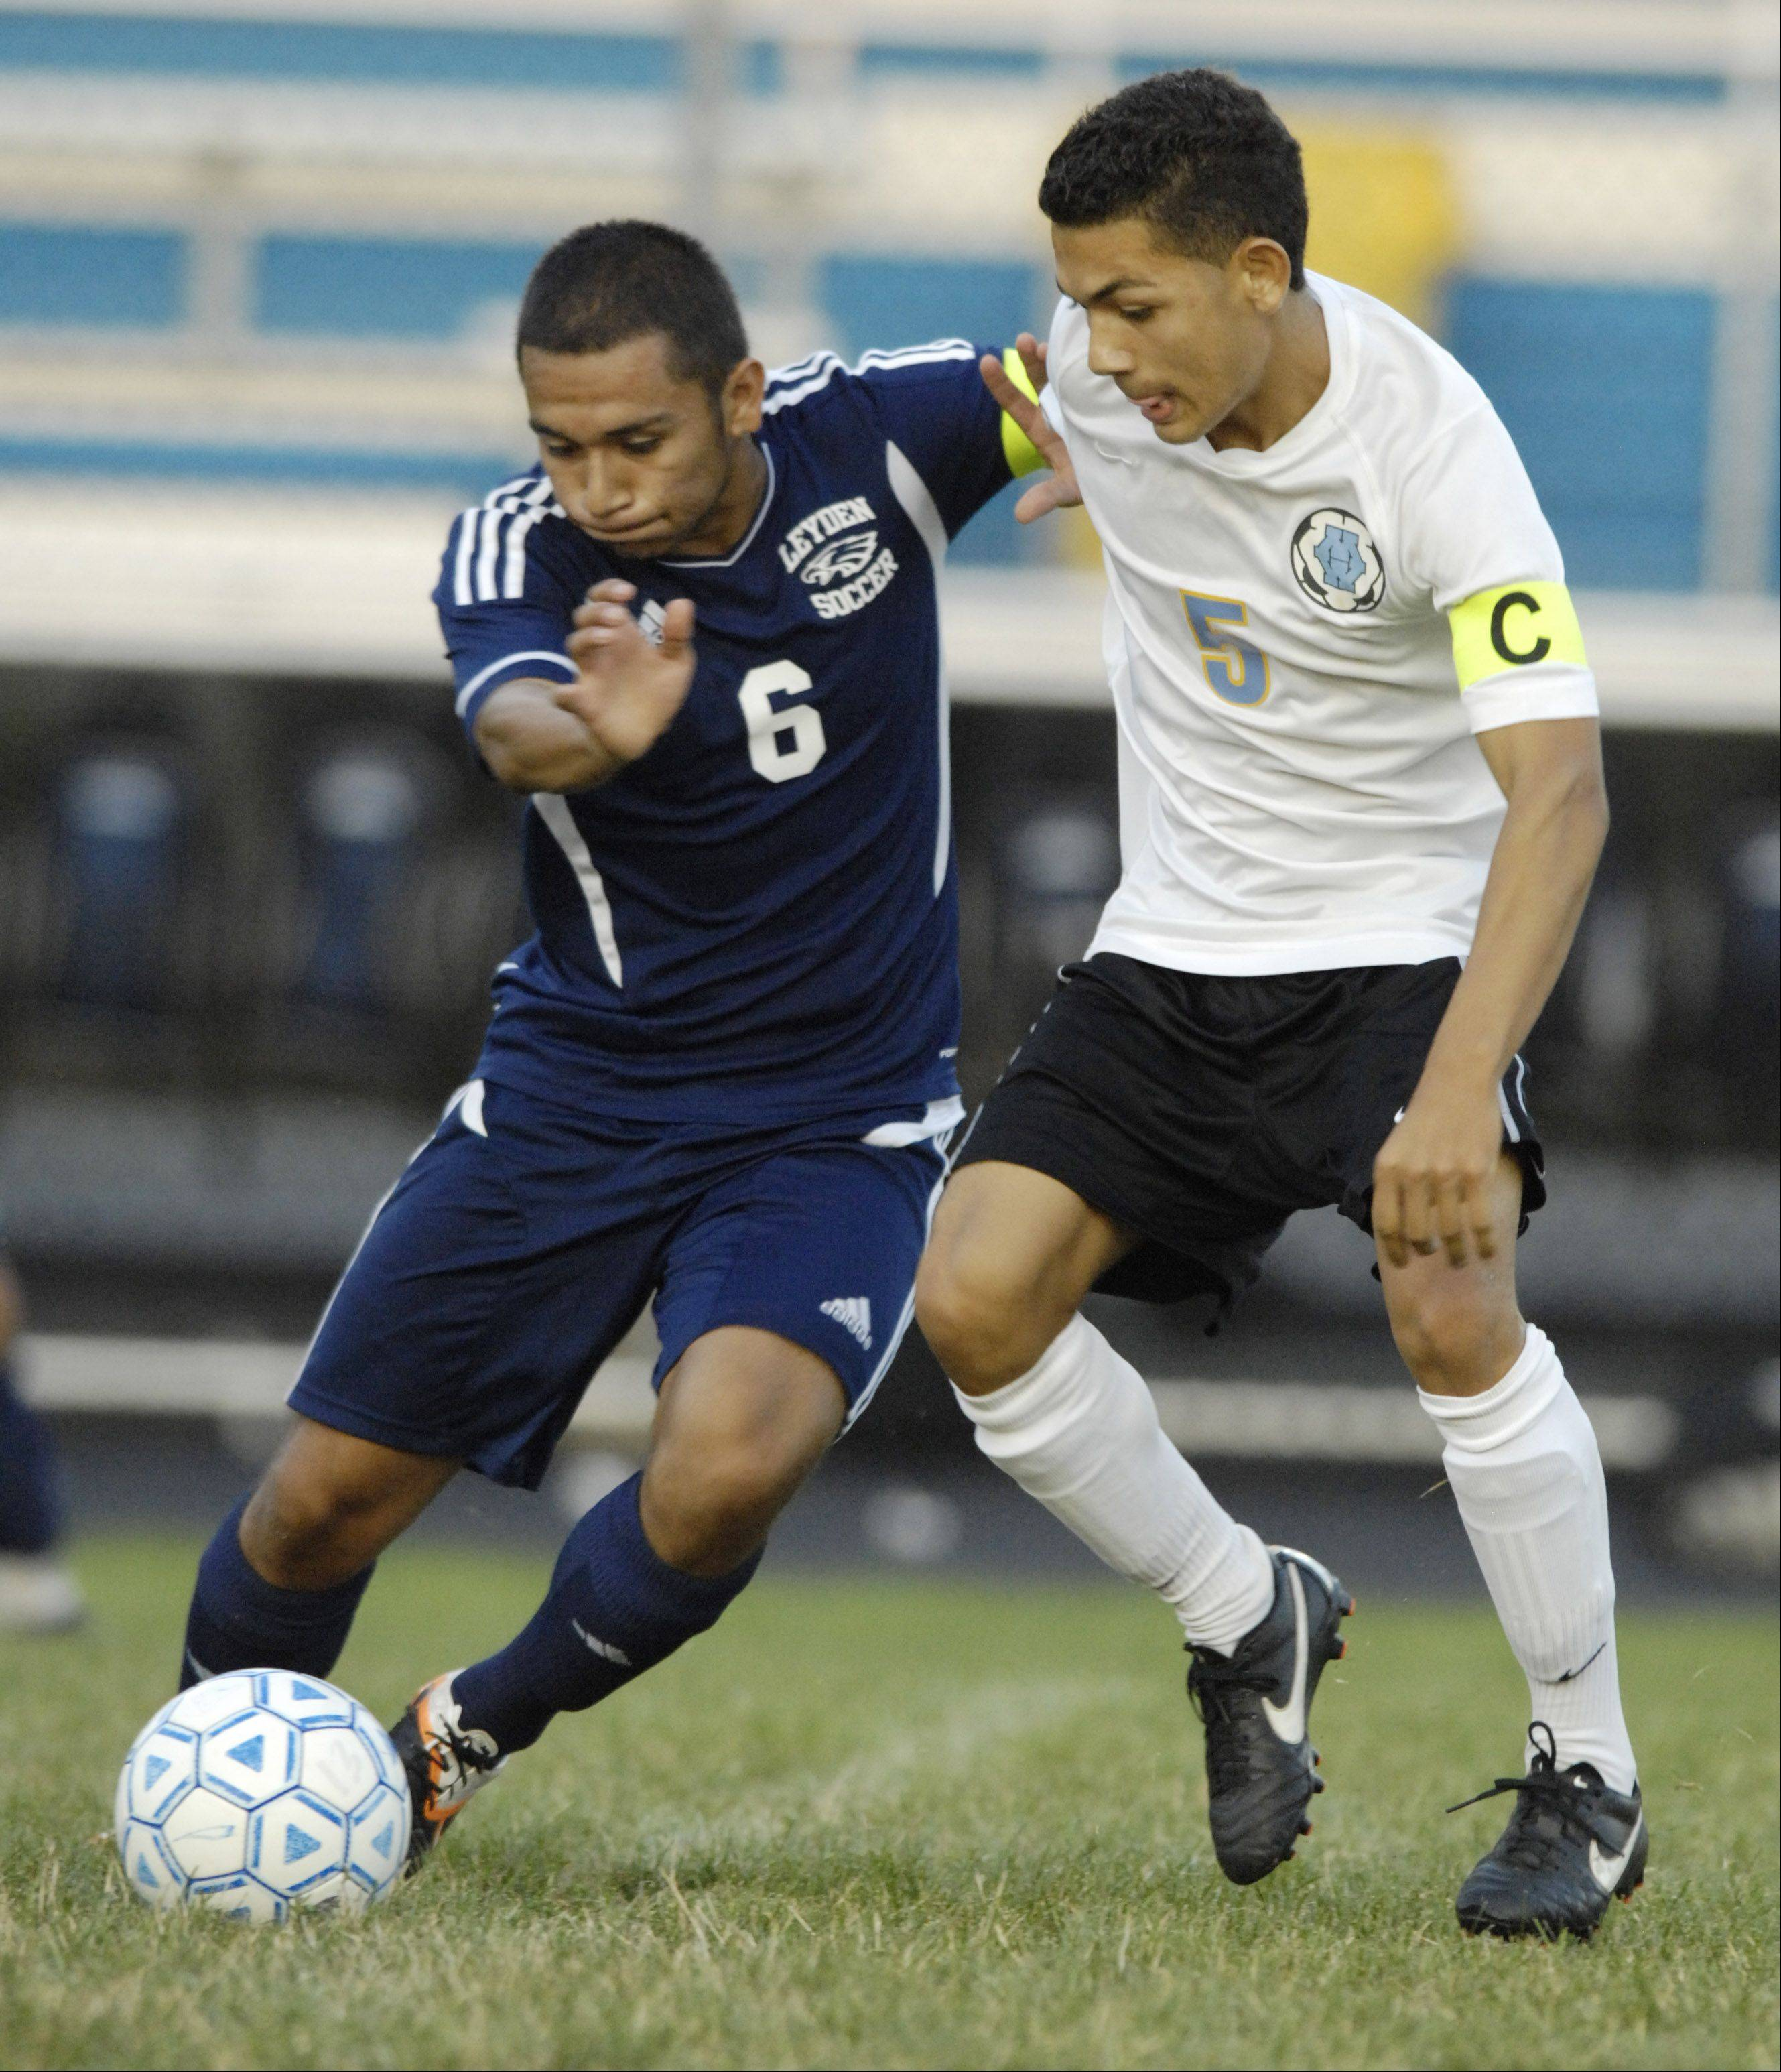 Leyden's Juan Recendez, left, and Maine West's Jerry Espinoza battle for position during Wednesday's game.